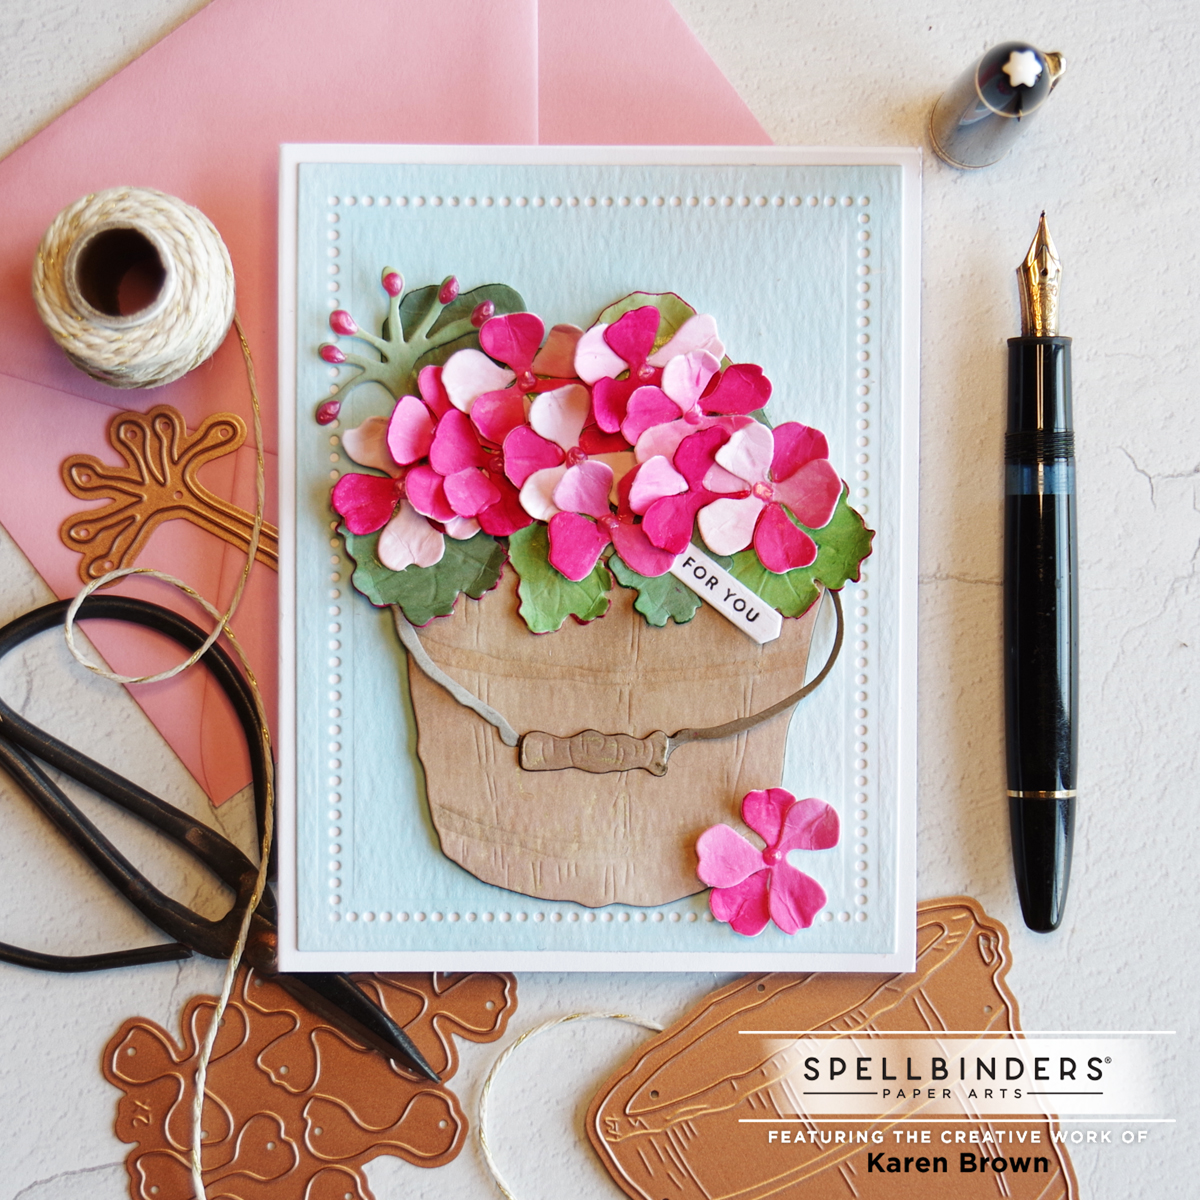 Die Cut Geranium card with hand crafted papers.